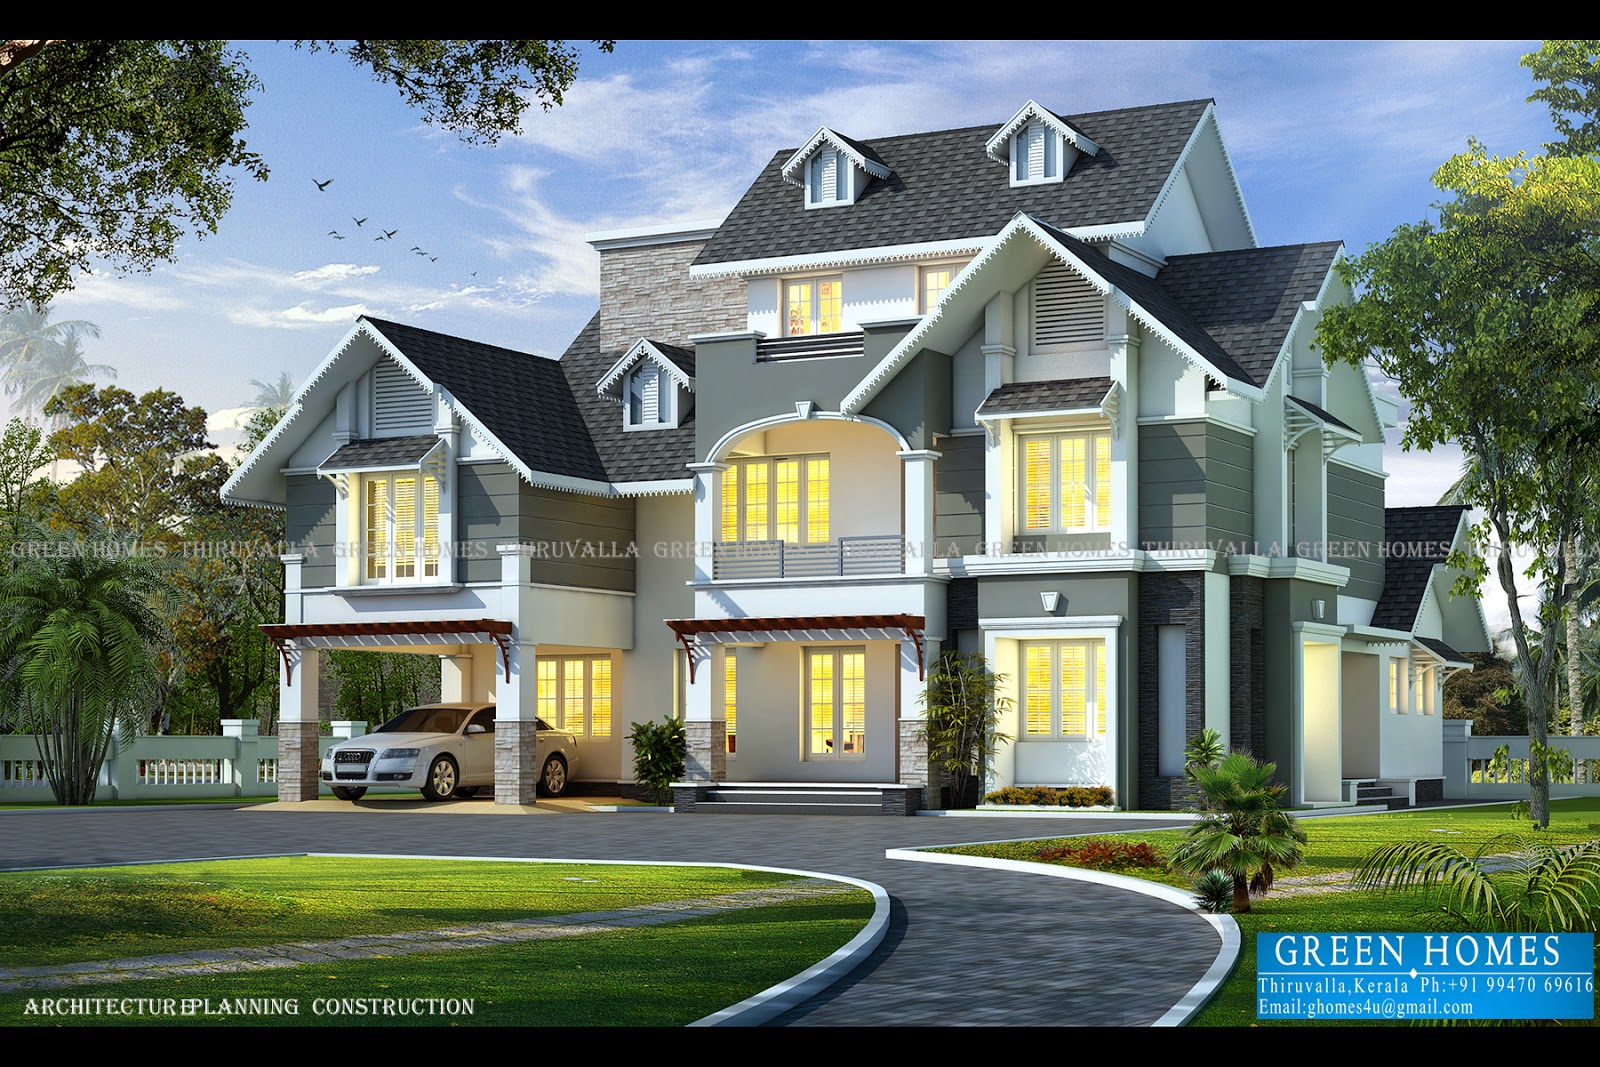 Green homes awesome european style house in 3650 sq feet for Green home blueprints